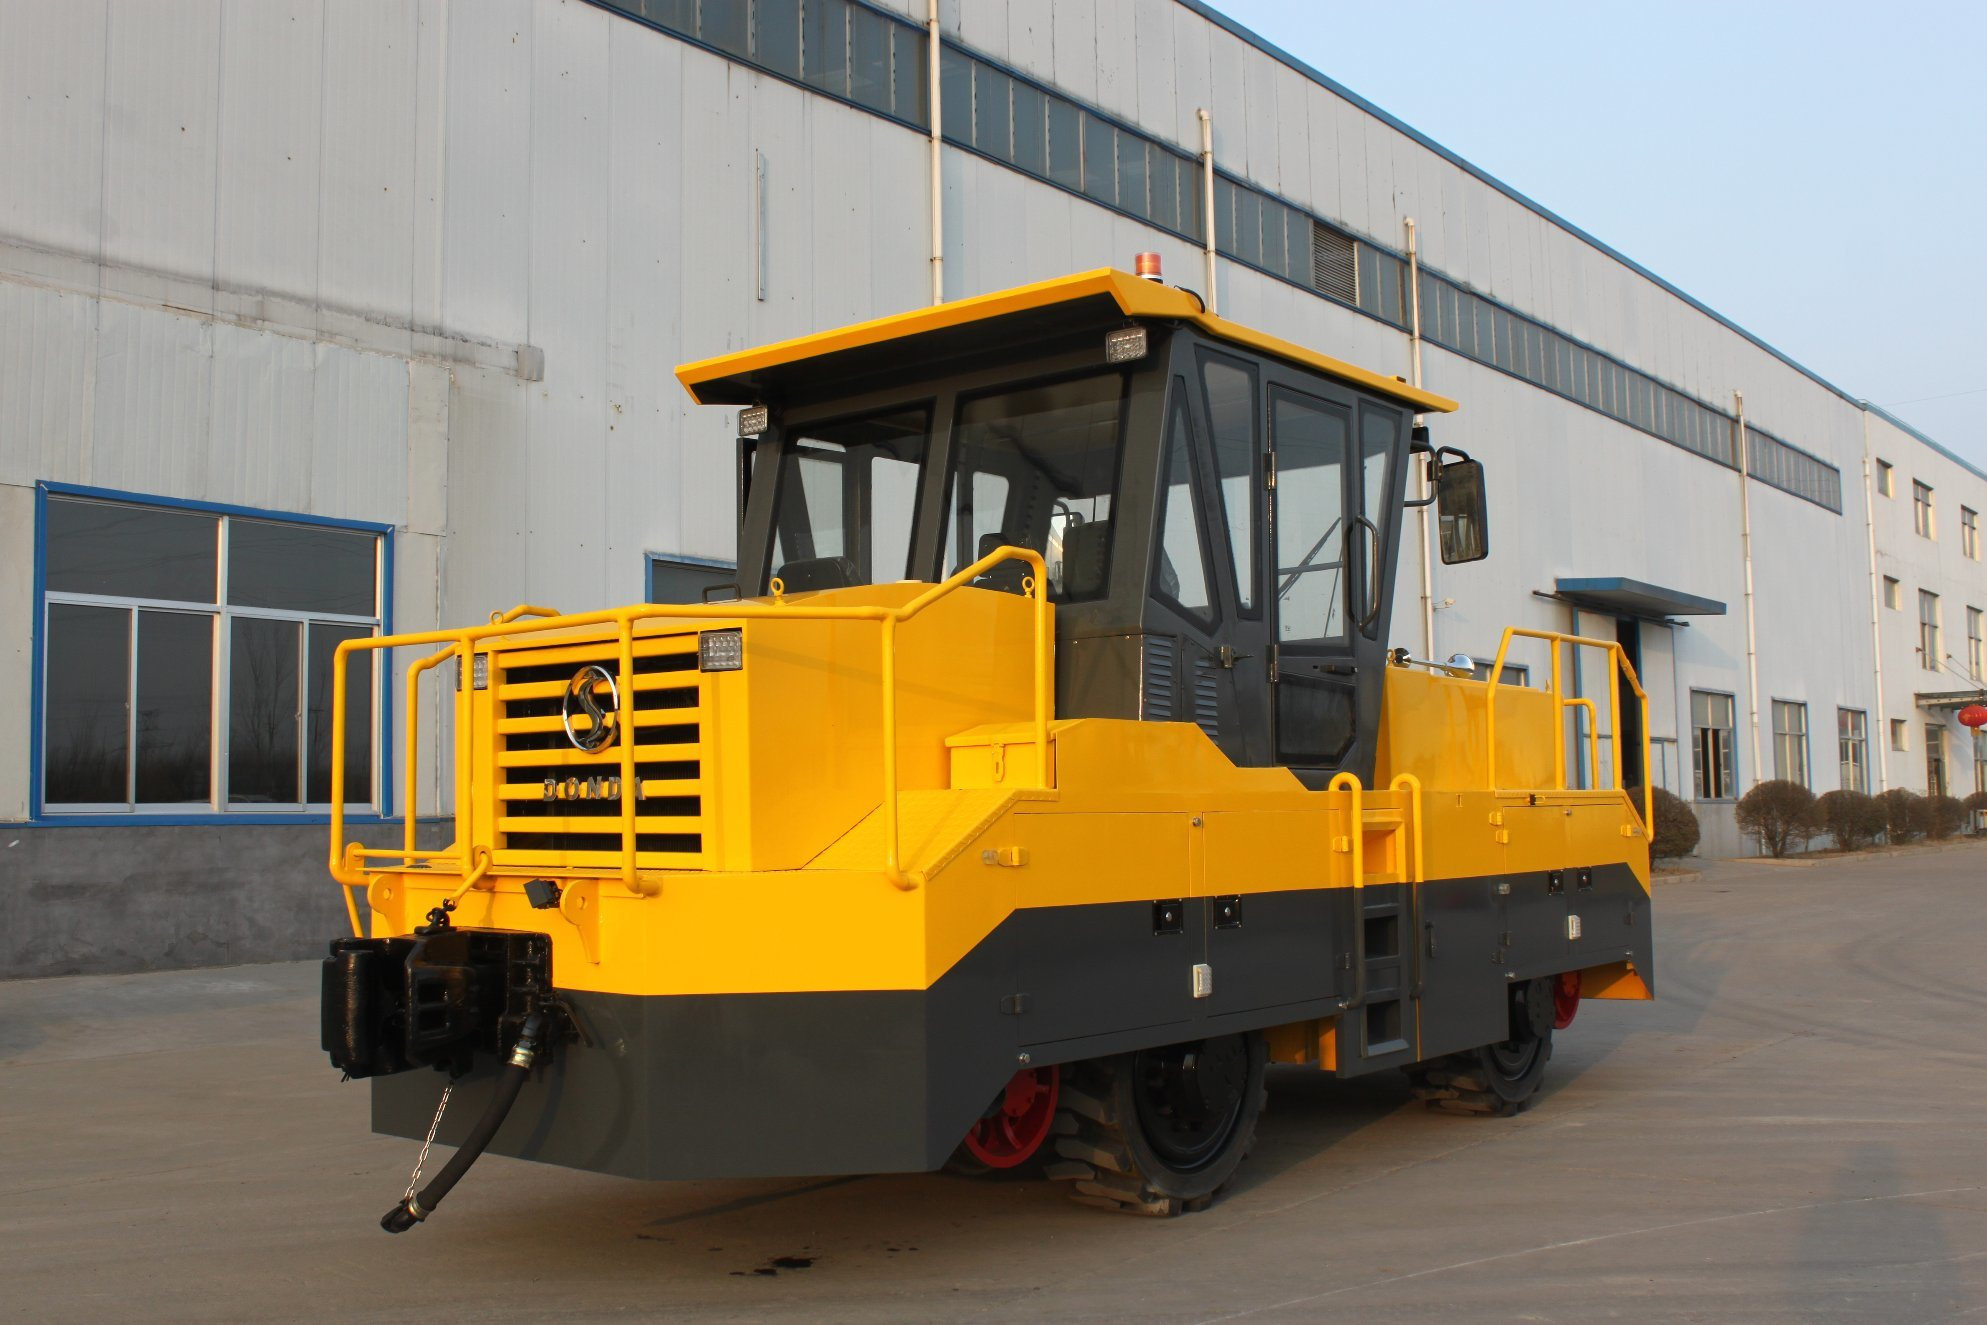 Roadrail Tractor Used for Railway Shunting